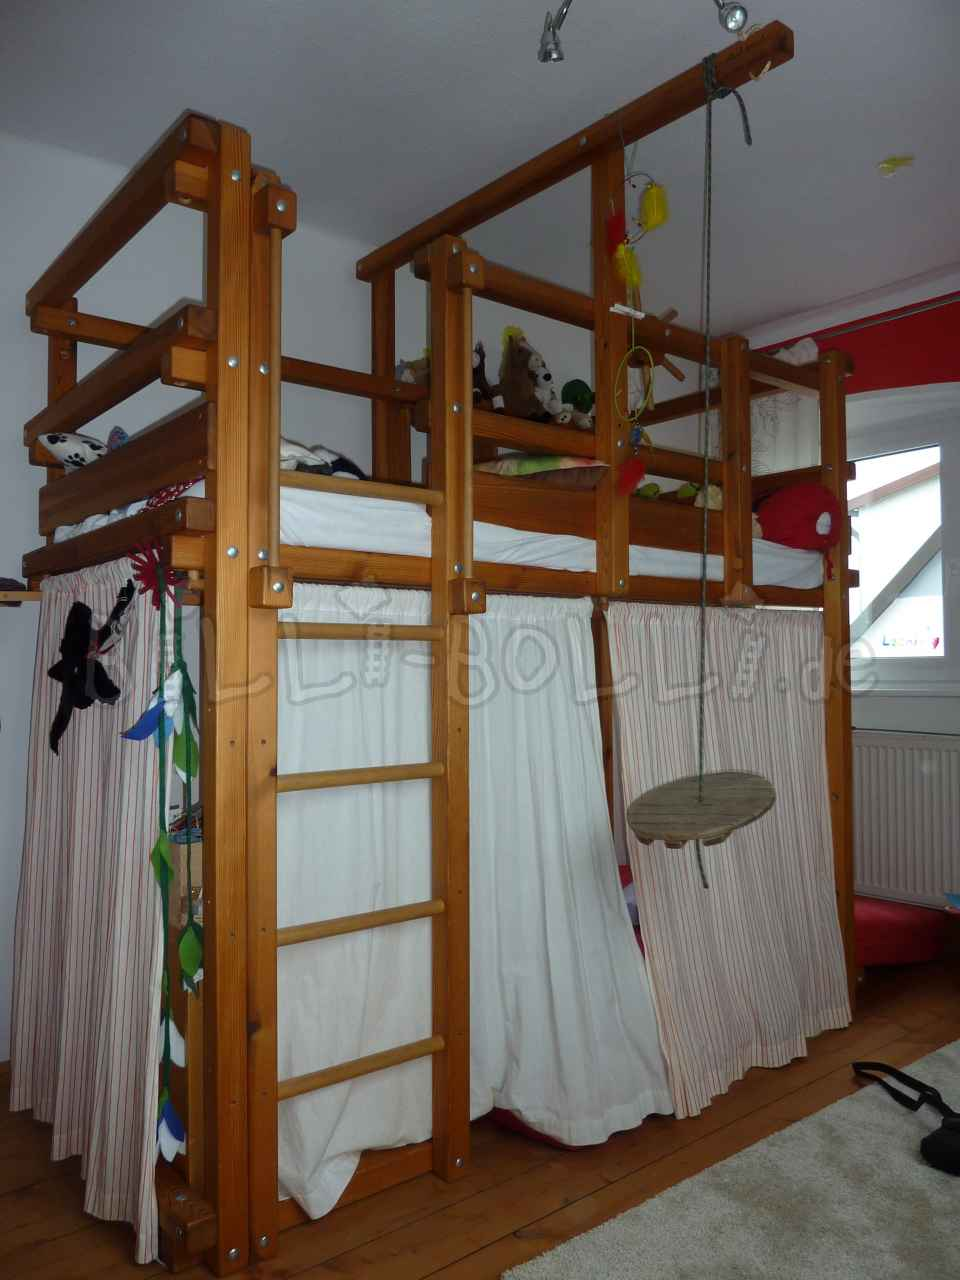 Cheap Bolli adventure high bed, 90 x 200 cm, pine oil-waxed (second hand loft bed)